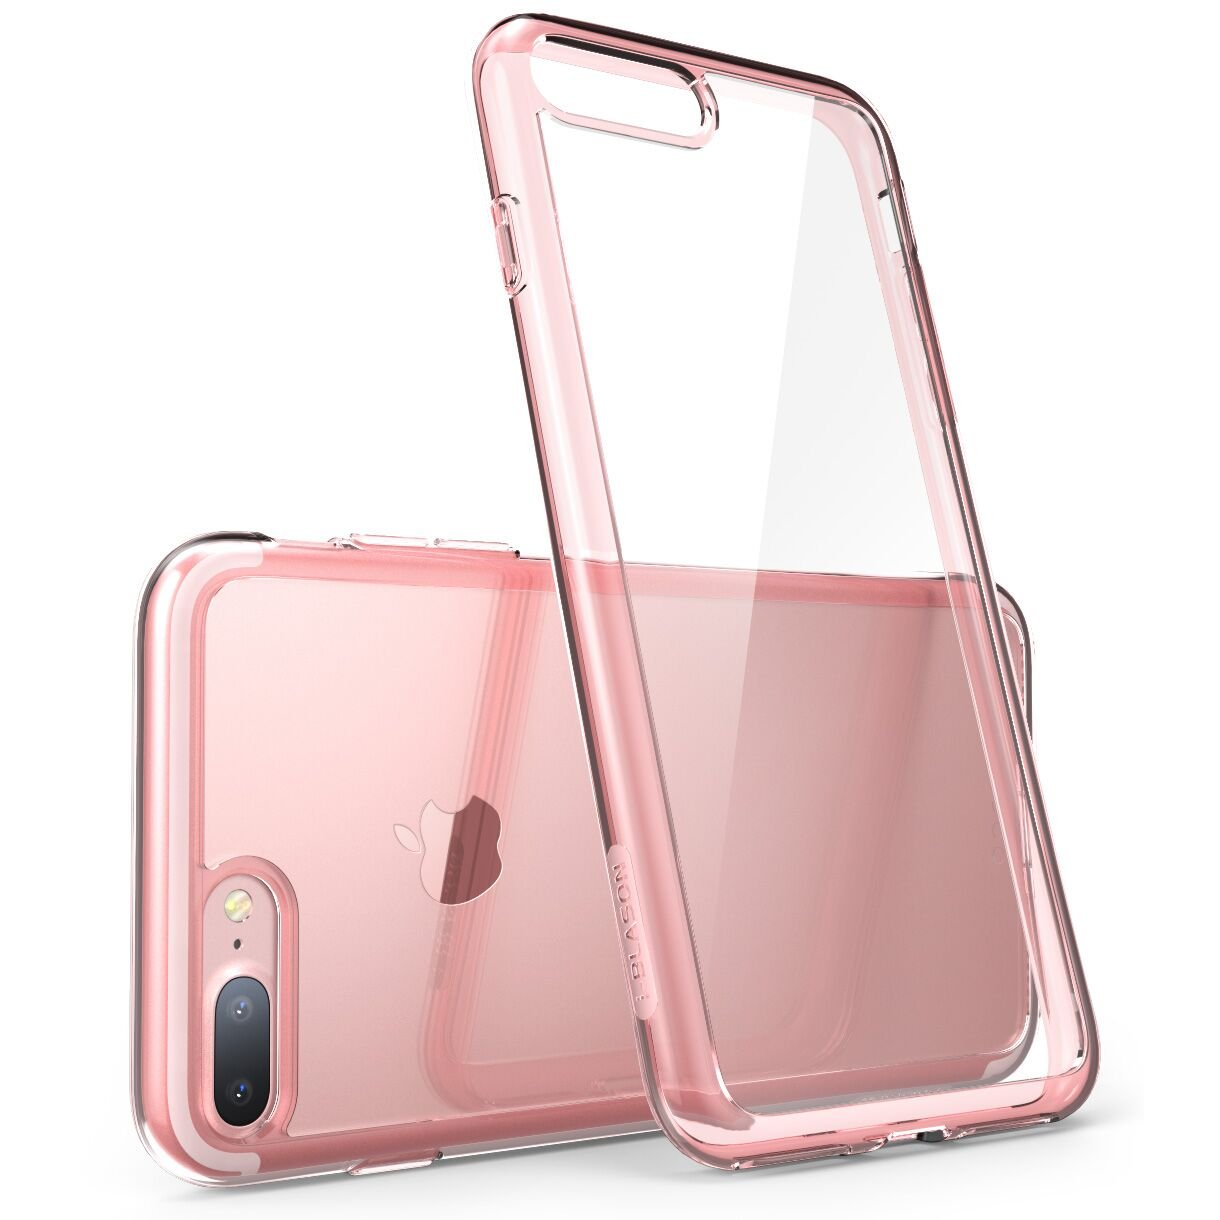 i-Blason Case for iPhone 7 Plus 2016 /iPhone 8 Plus 2017 Release,  Halo Series   Scratch Resistant  Clear Case (Clear/Rose Gold)